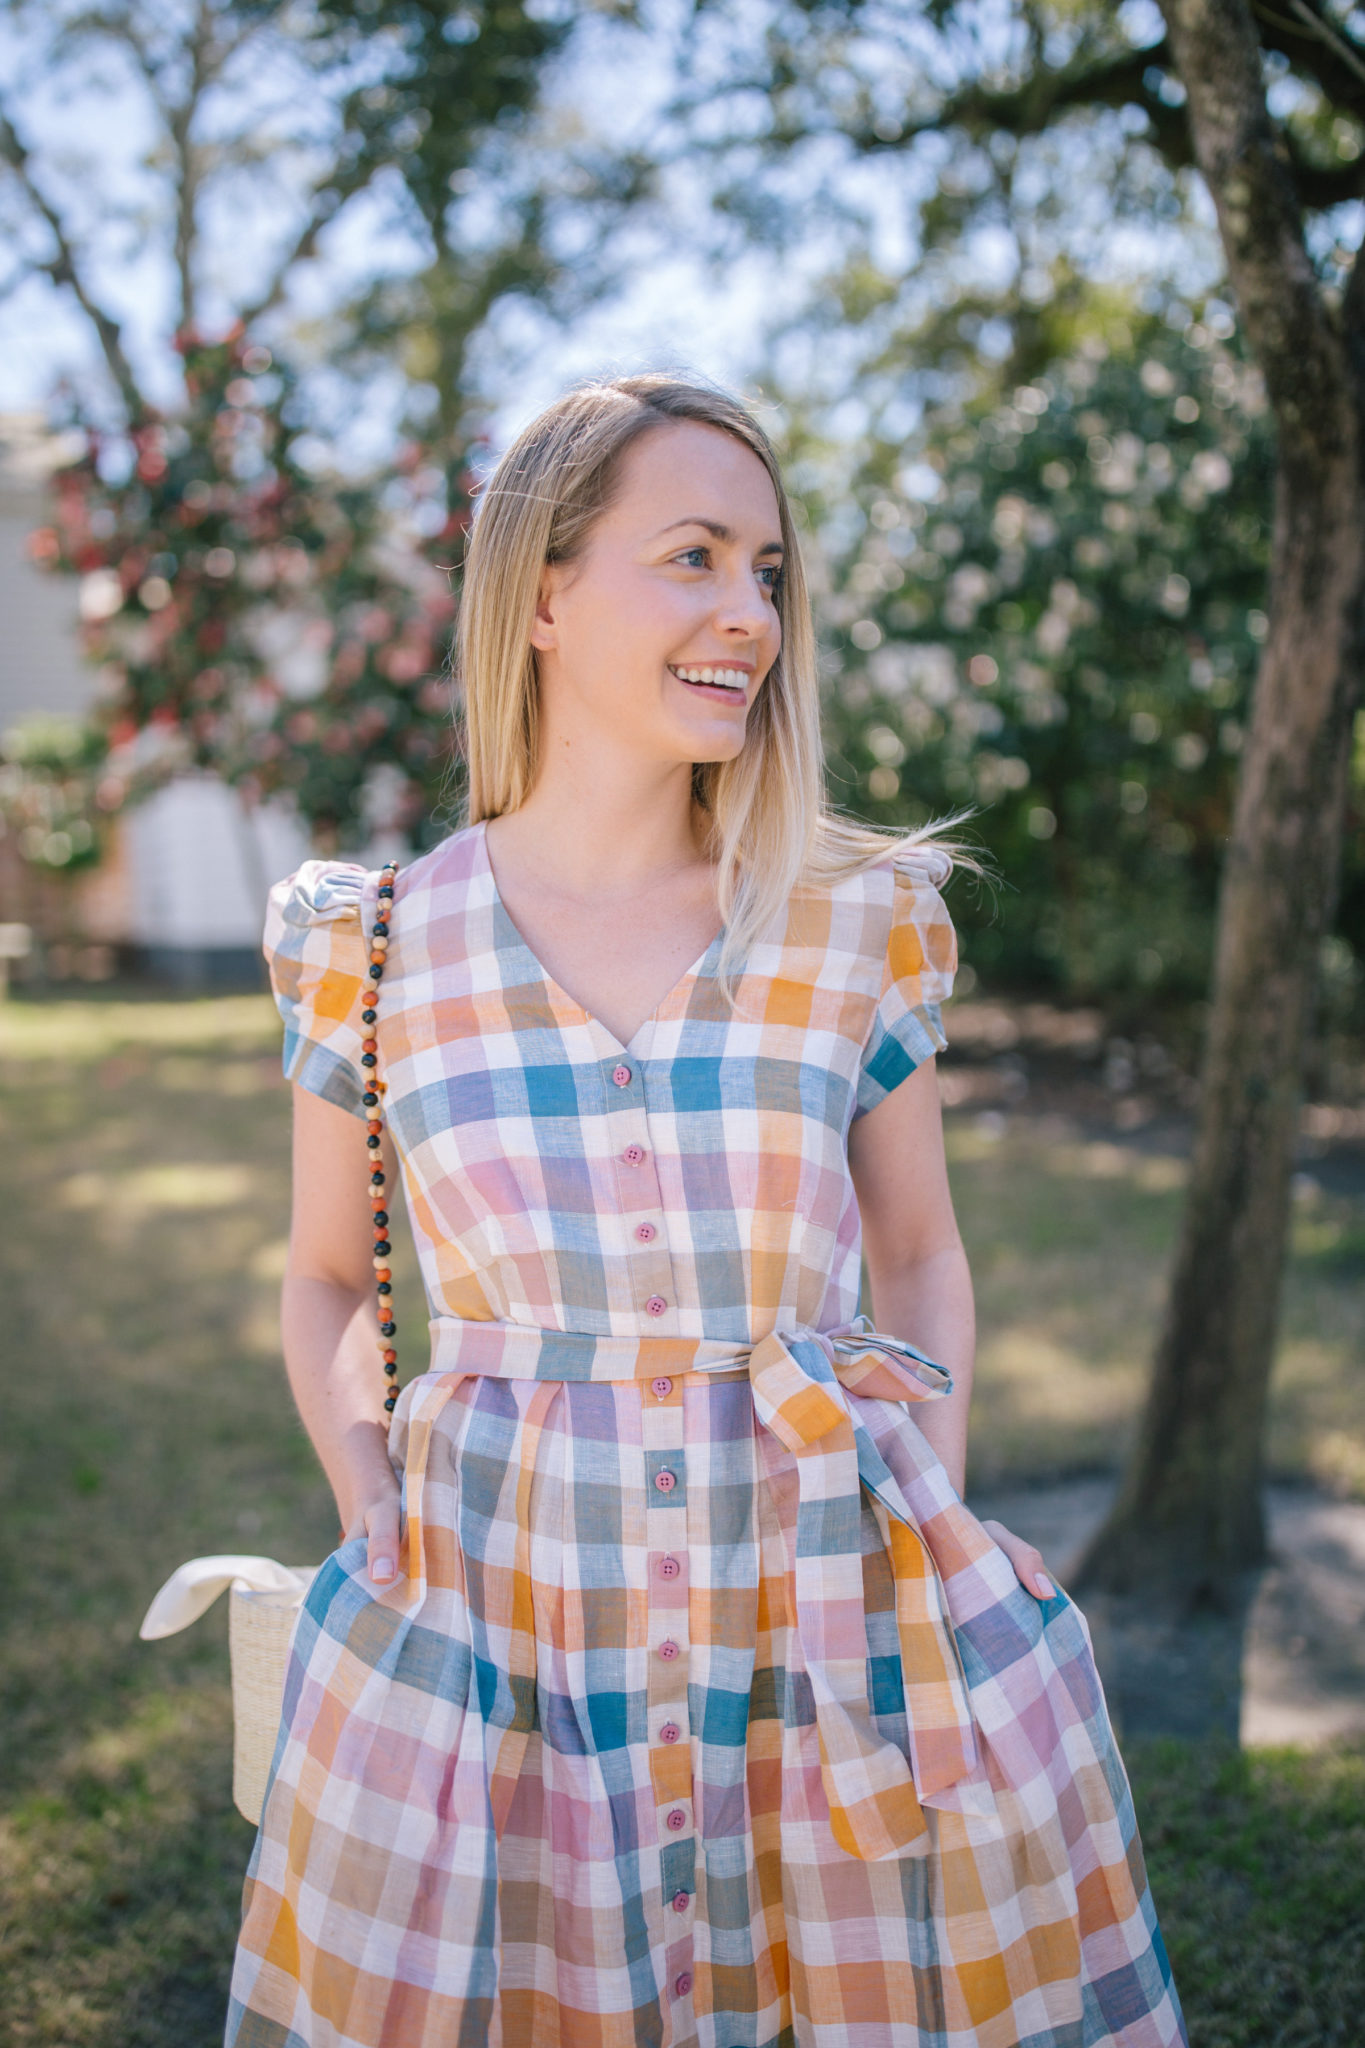 How To Wear A Gingham Dress- Gingham Puff Sleve Dresses   Rhyme & Reason